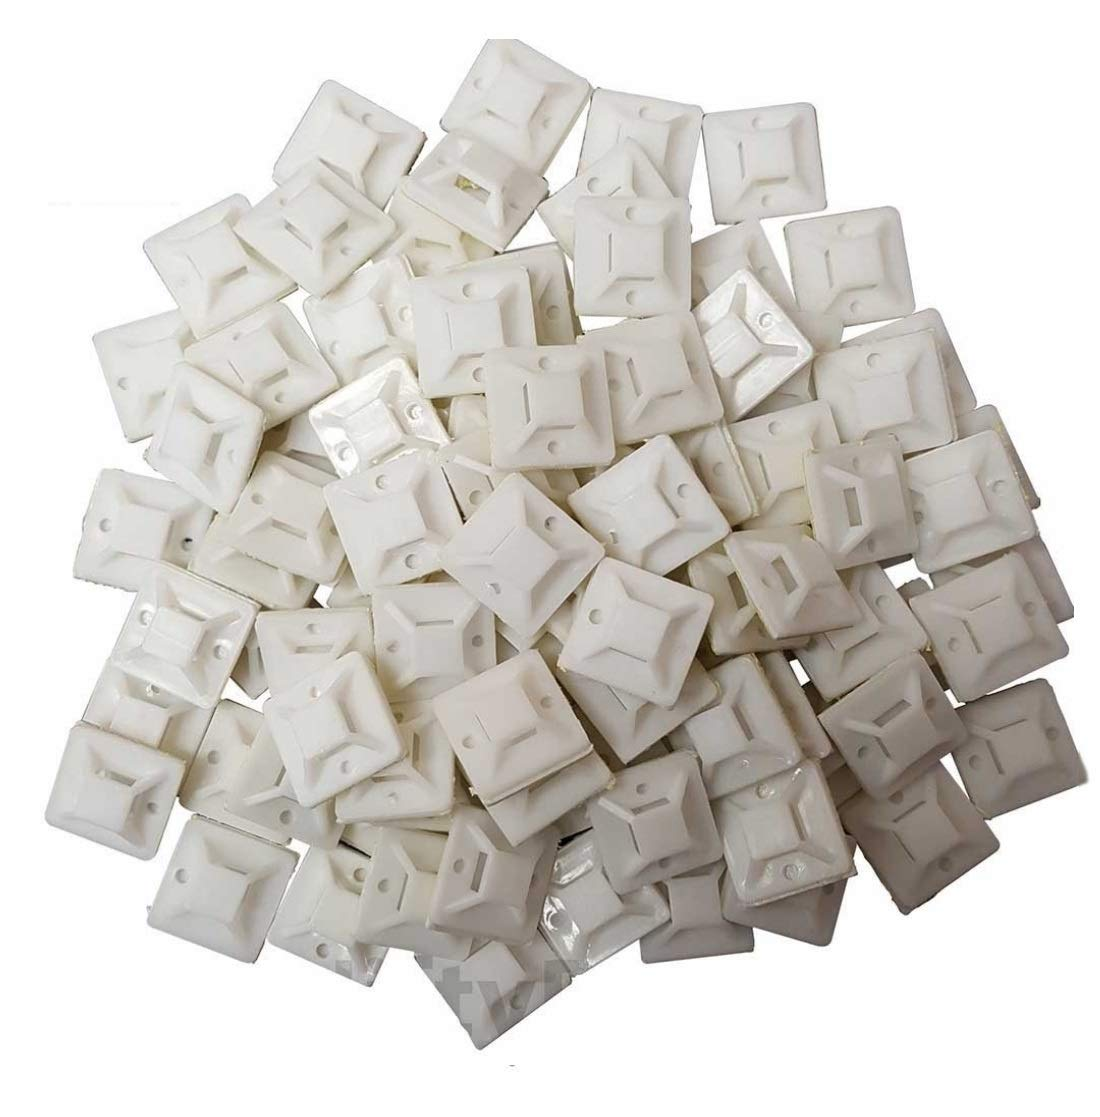 1.1 Cable Tie Mounts Self ADHESIVE Clips Base 100 Pack 30x30 mm Premium Grade Strength 100 White Cable Tie Mounts